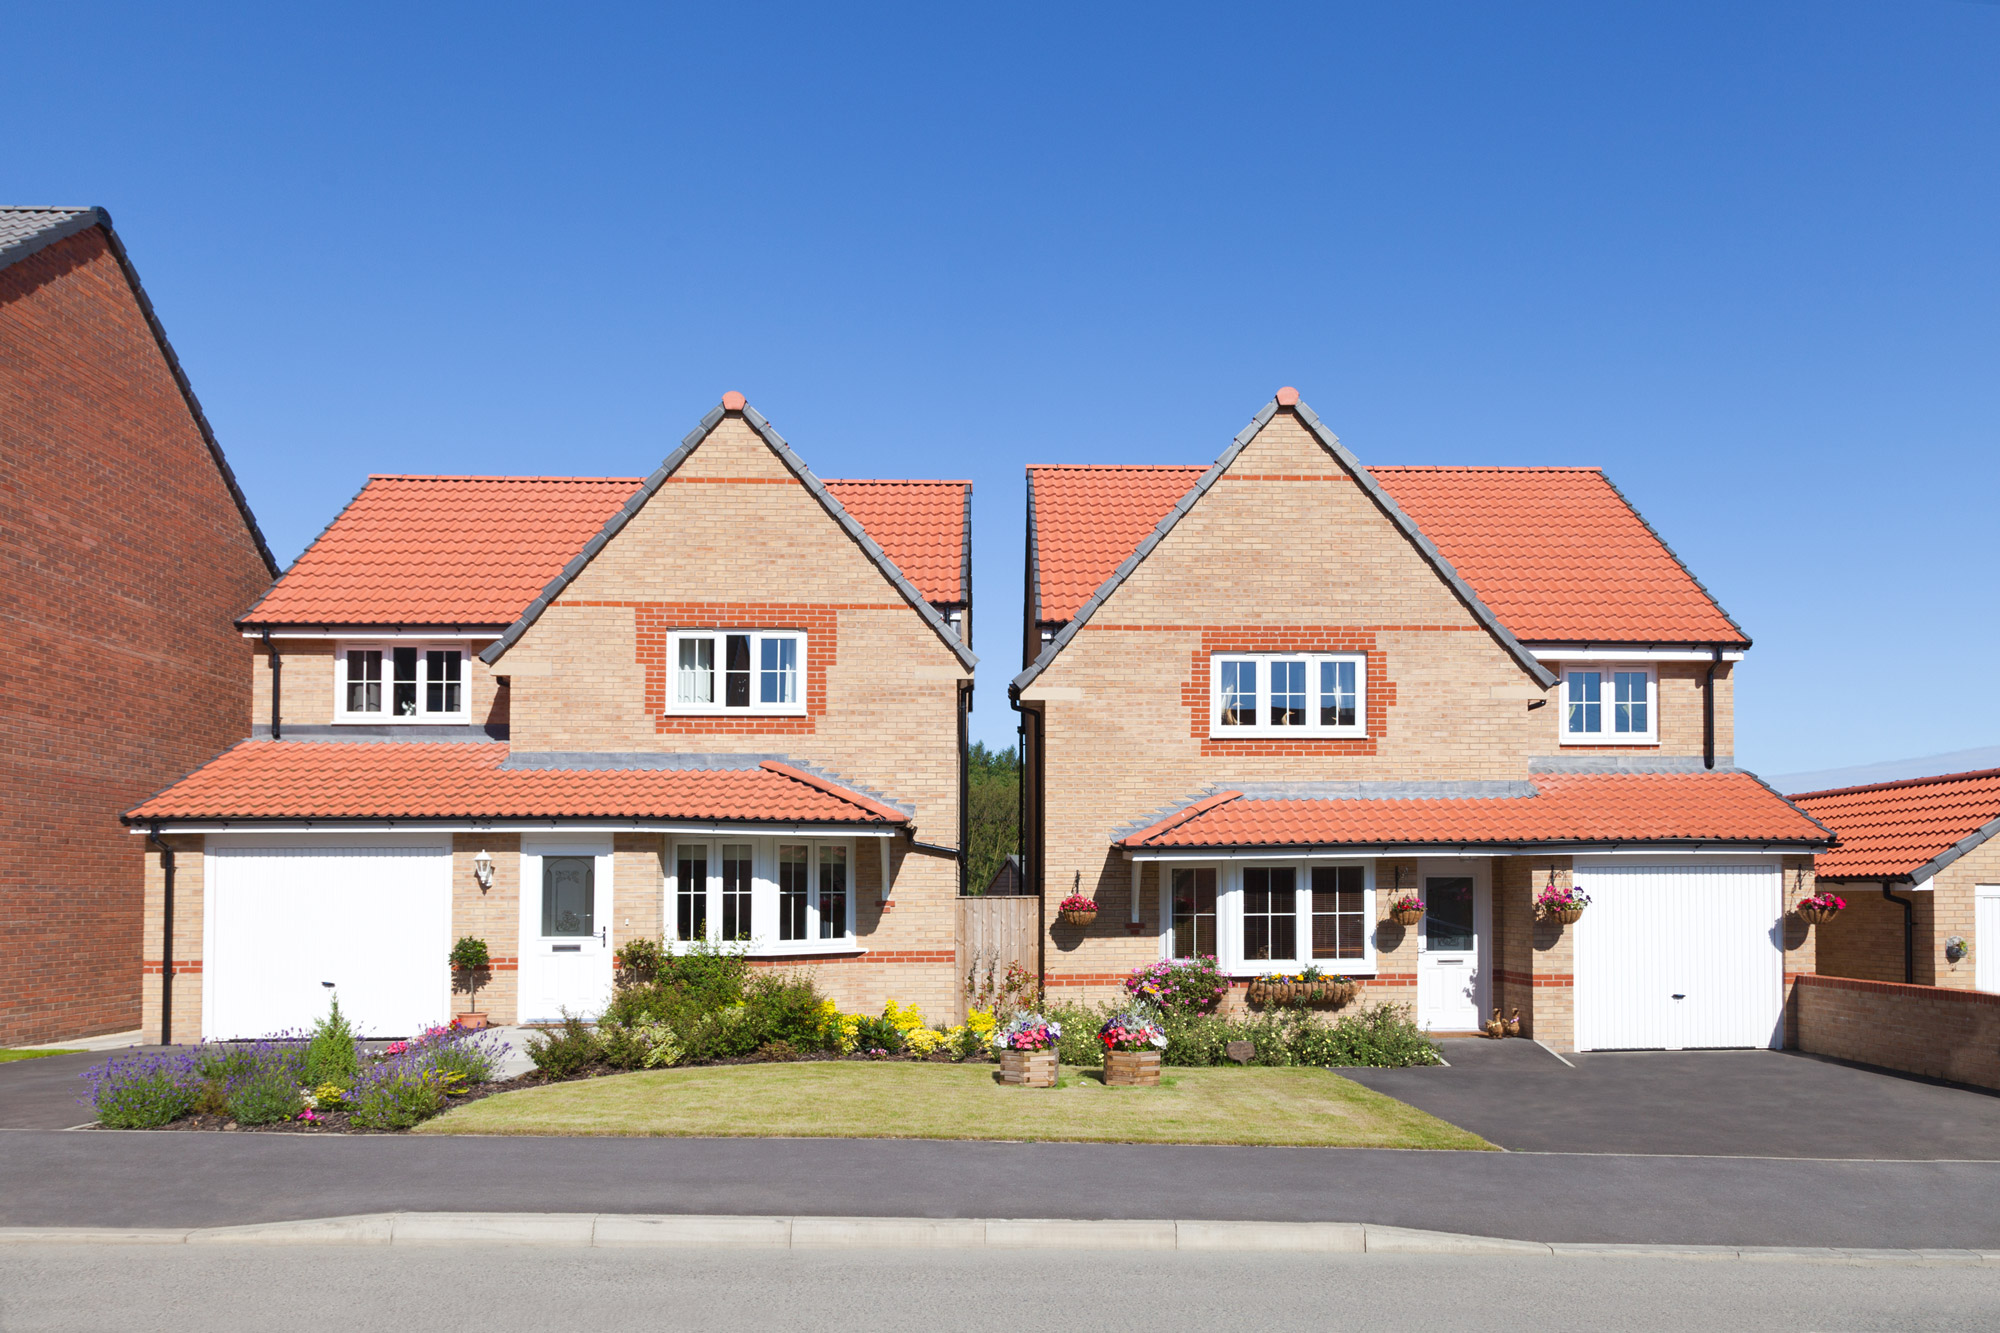 new homes for sale in Dorset